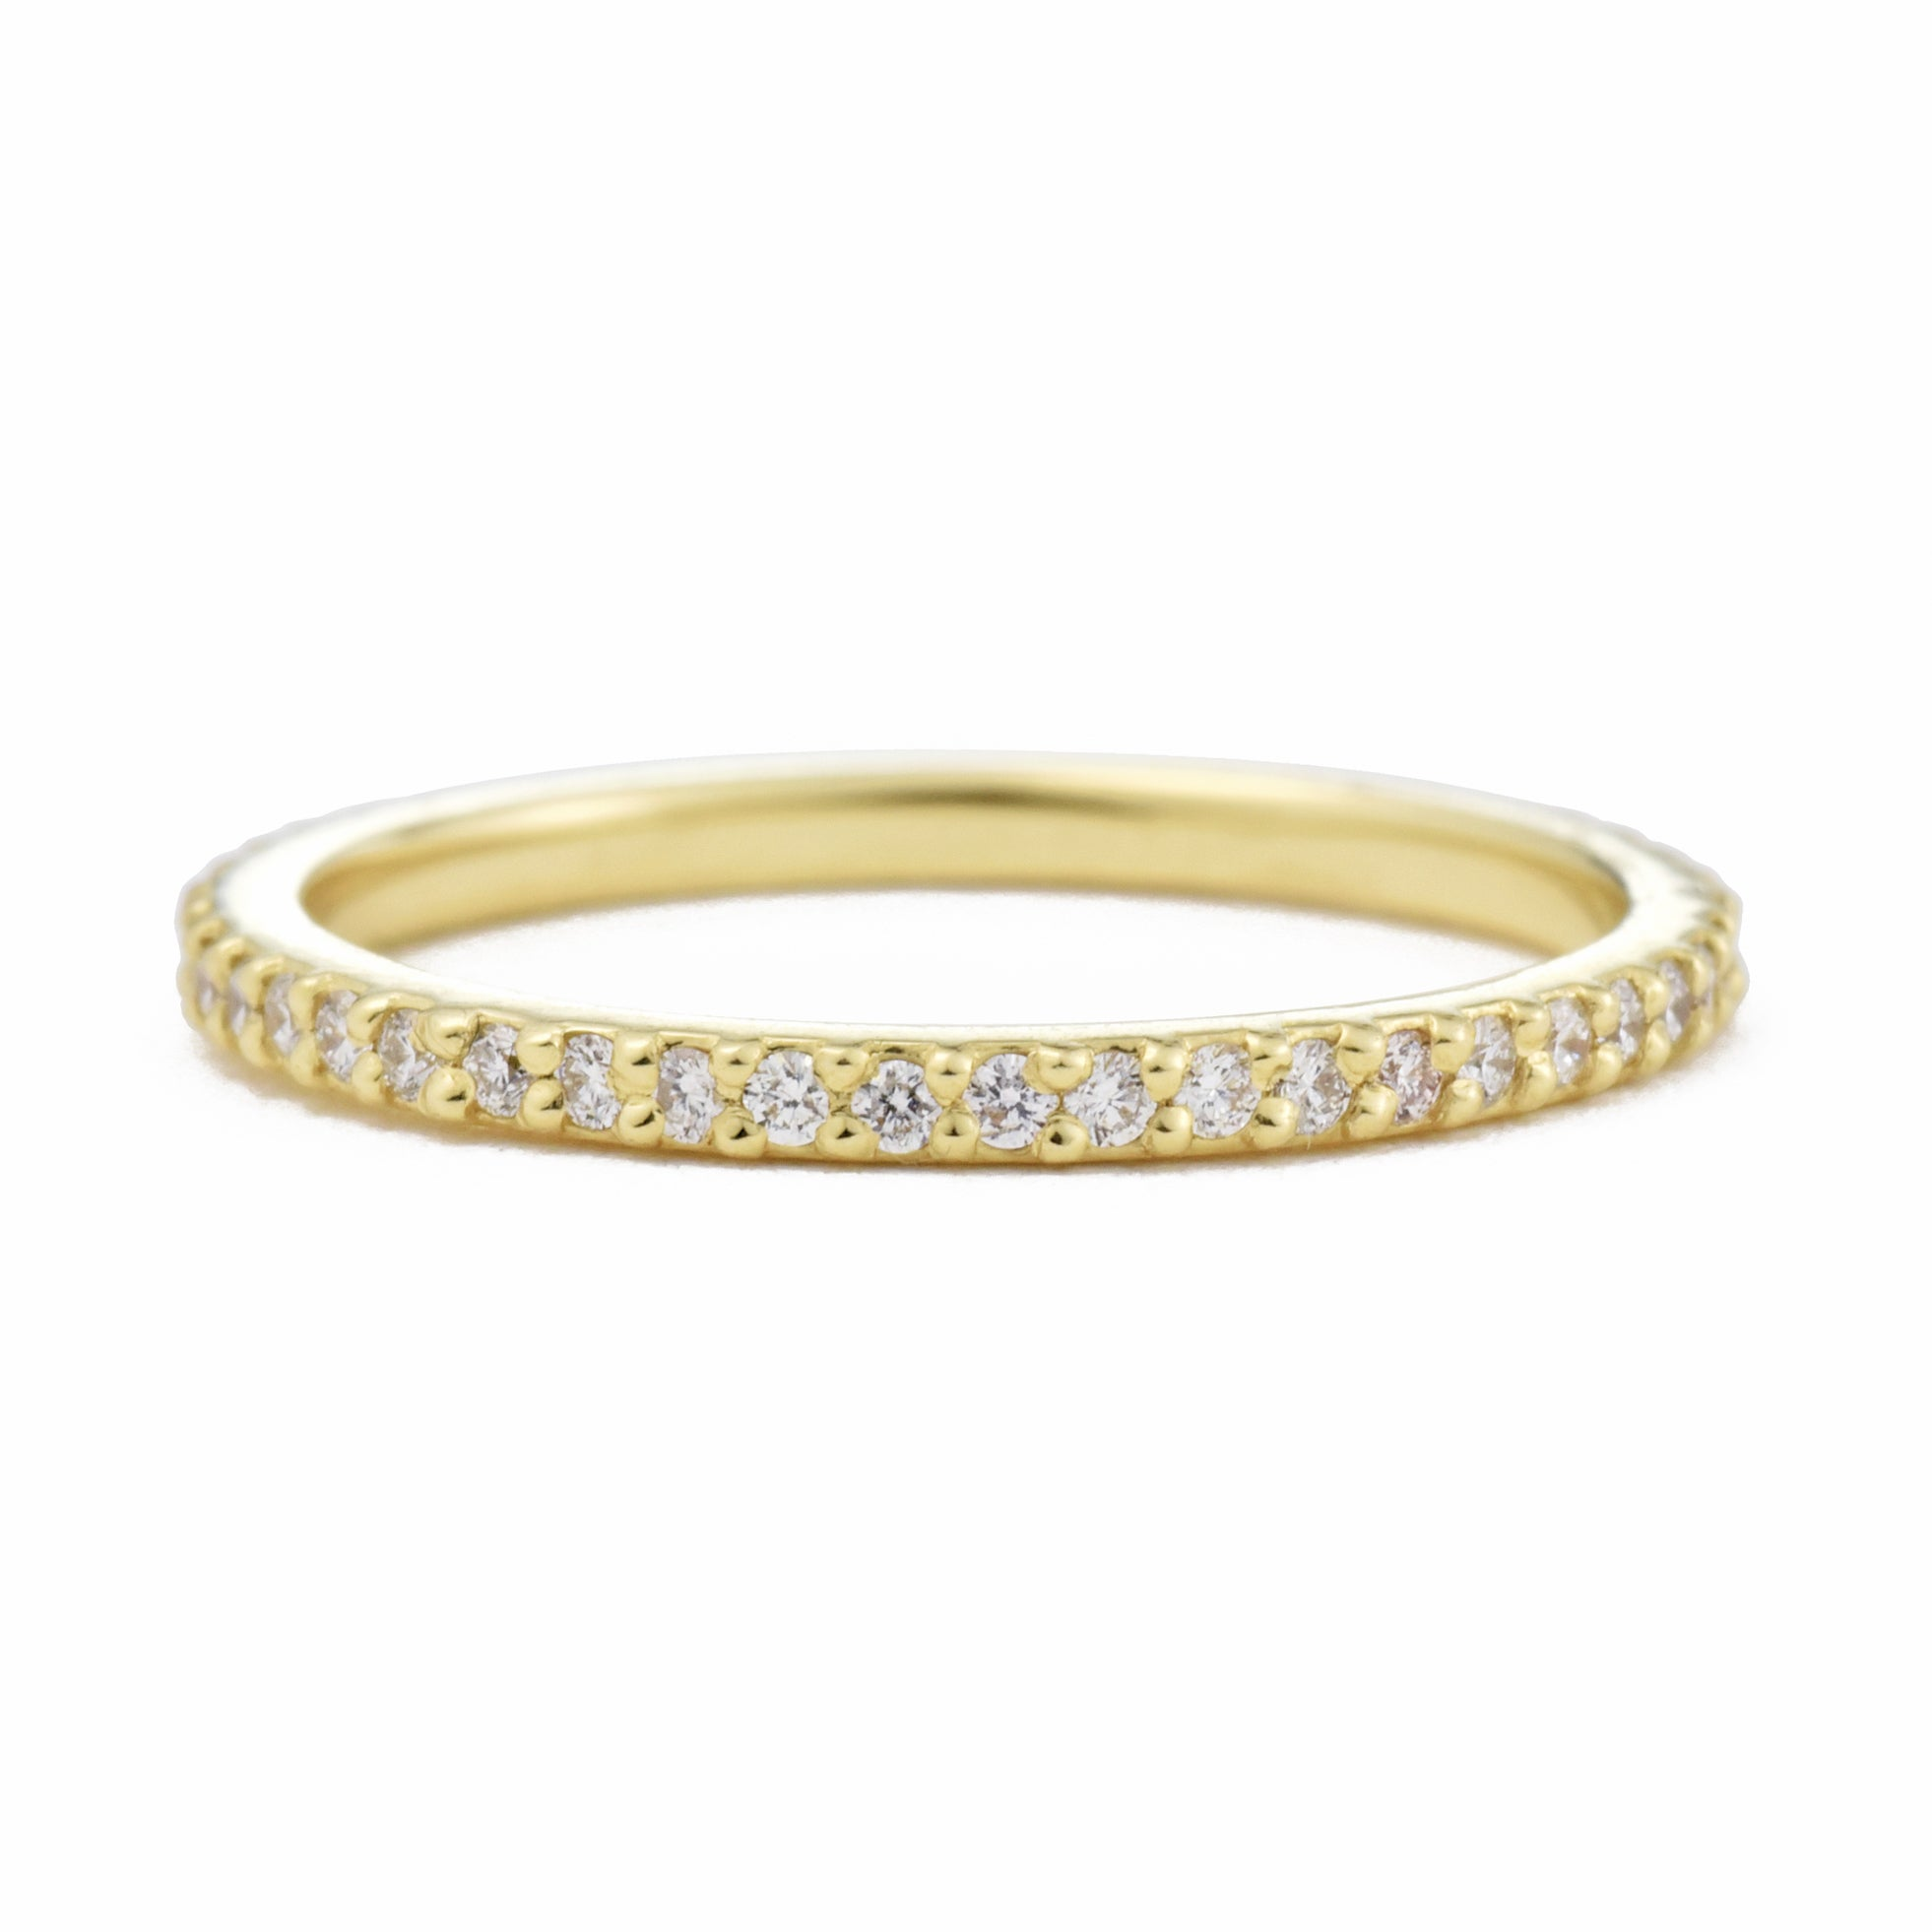 Dainty Mia Full Eternity Diamond Wedding Band in yellow gold